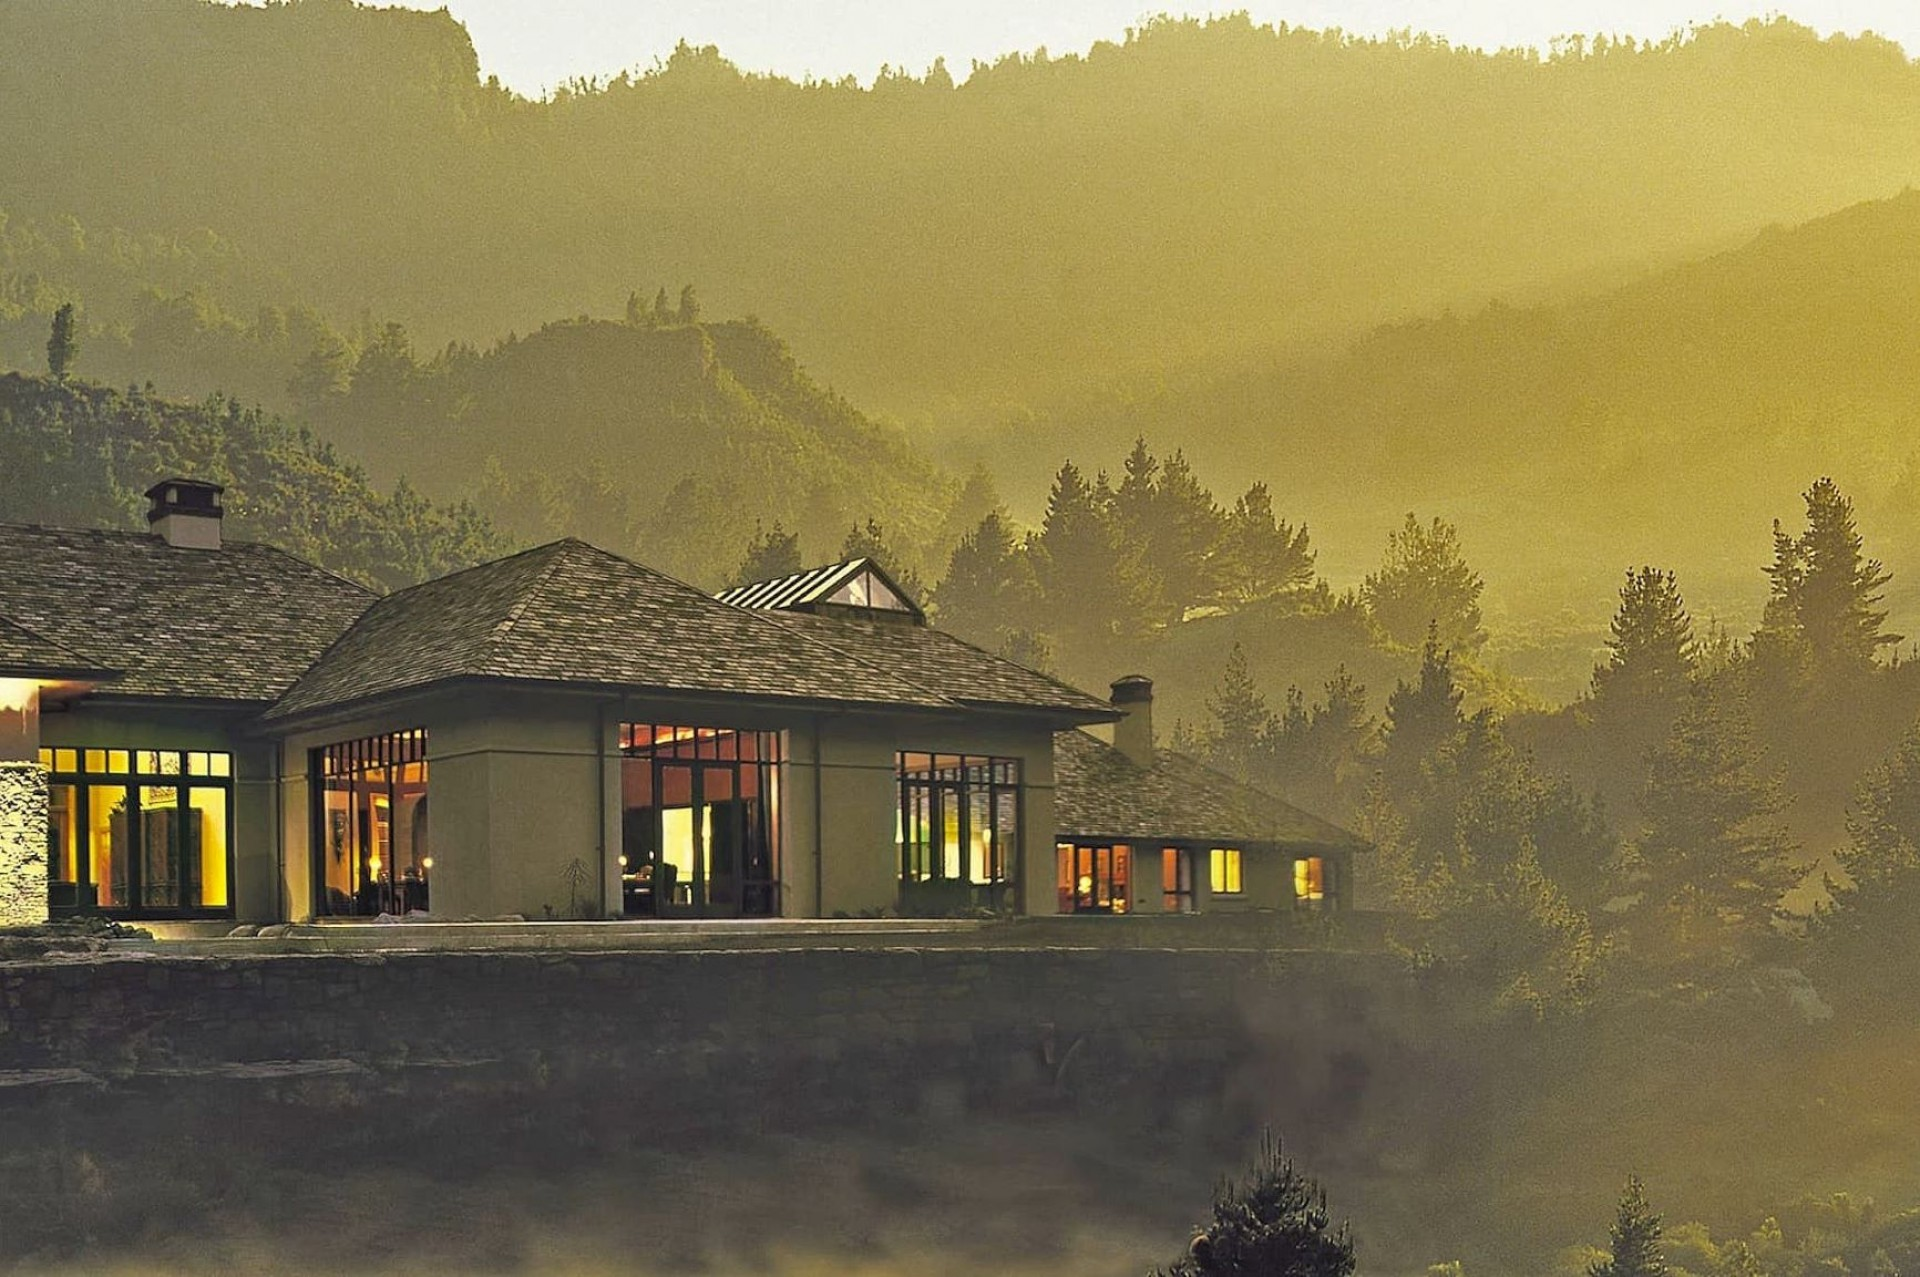 Treetops Lodge - A Special Lunch at One of The World's Best Luxury Destinations